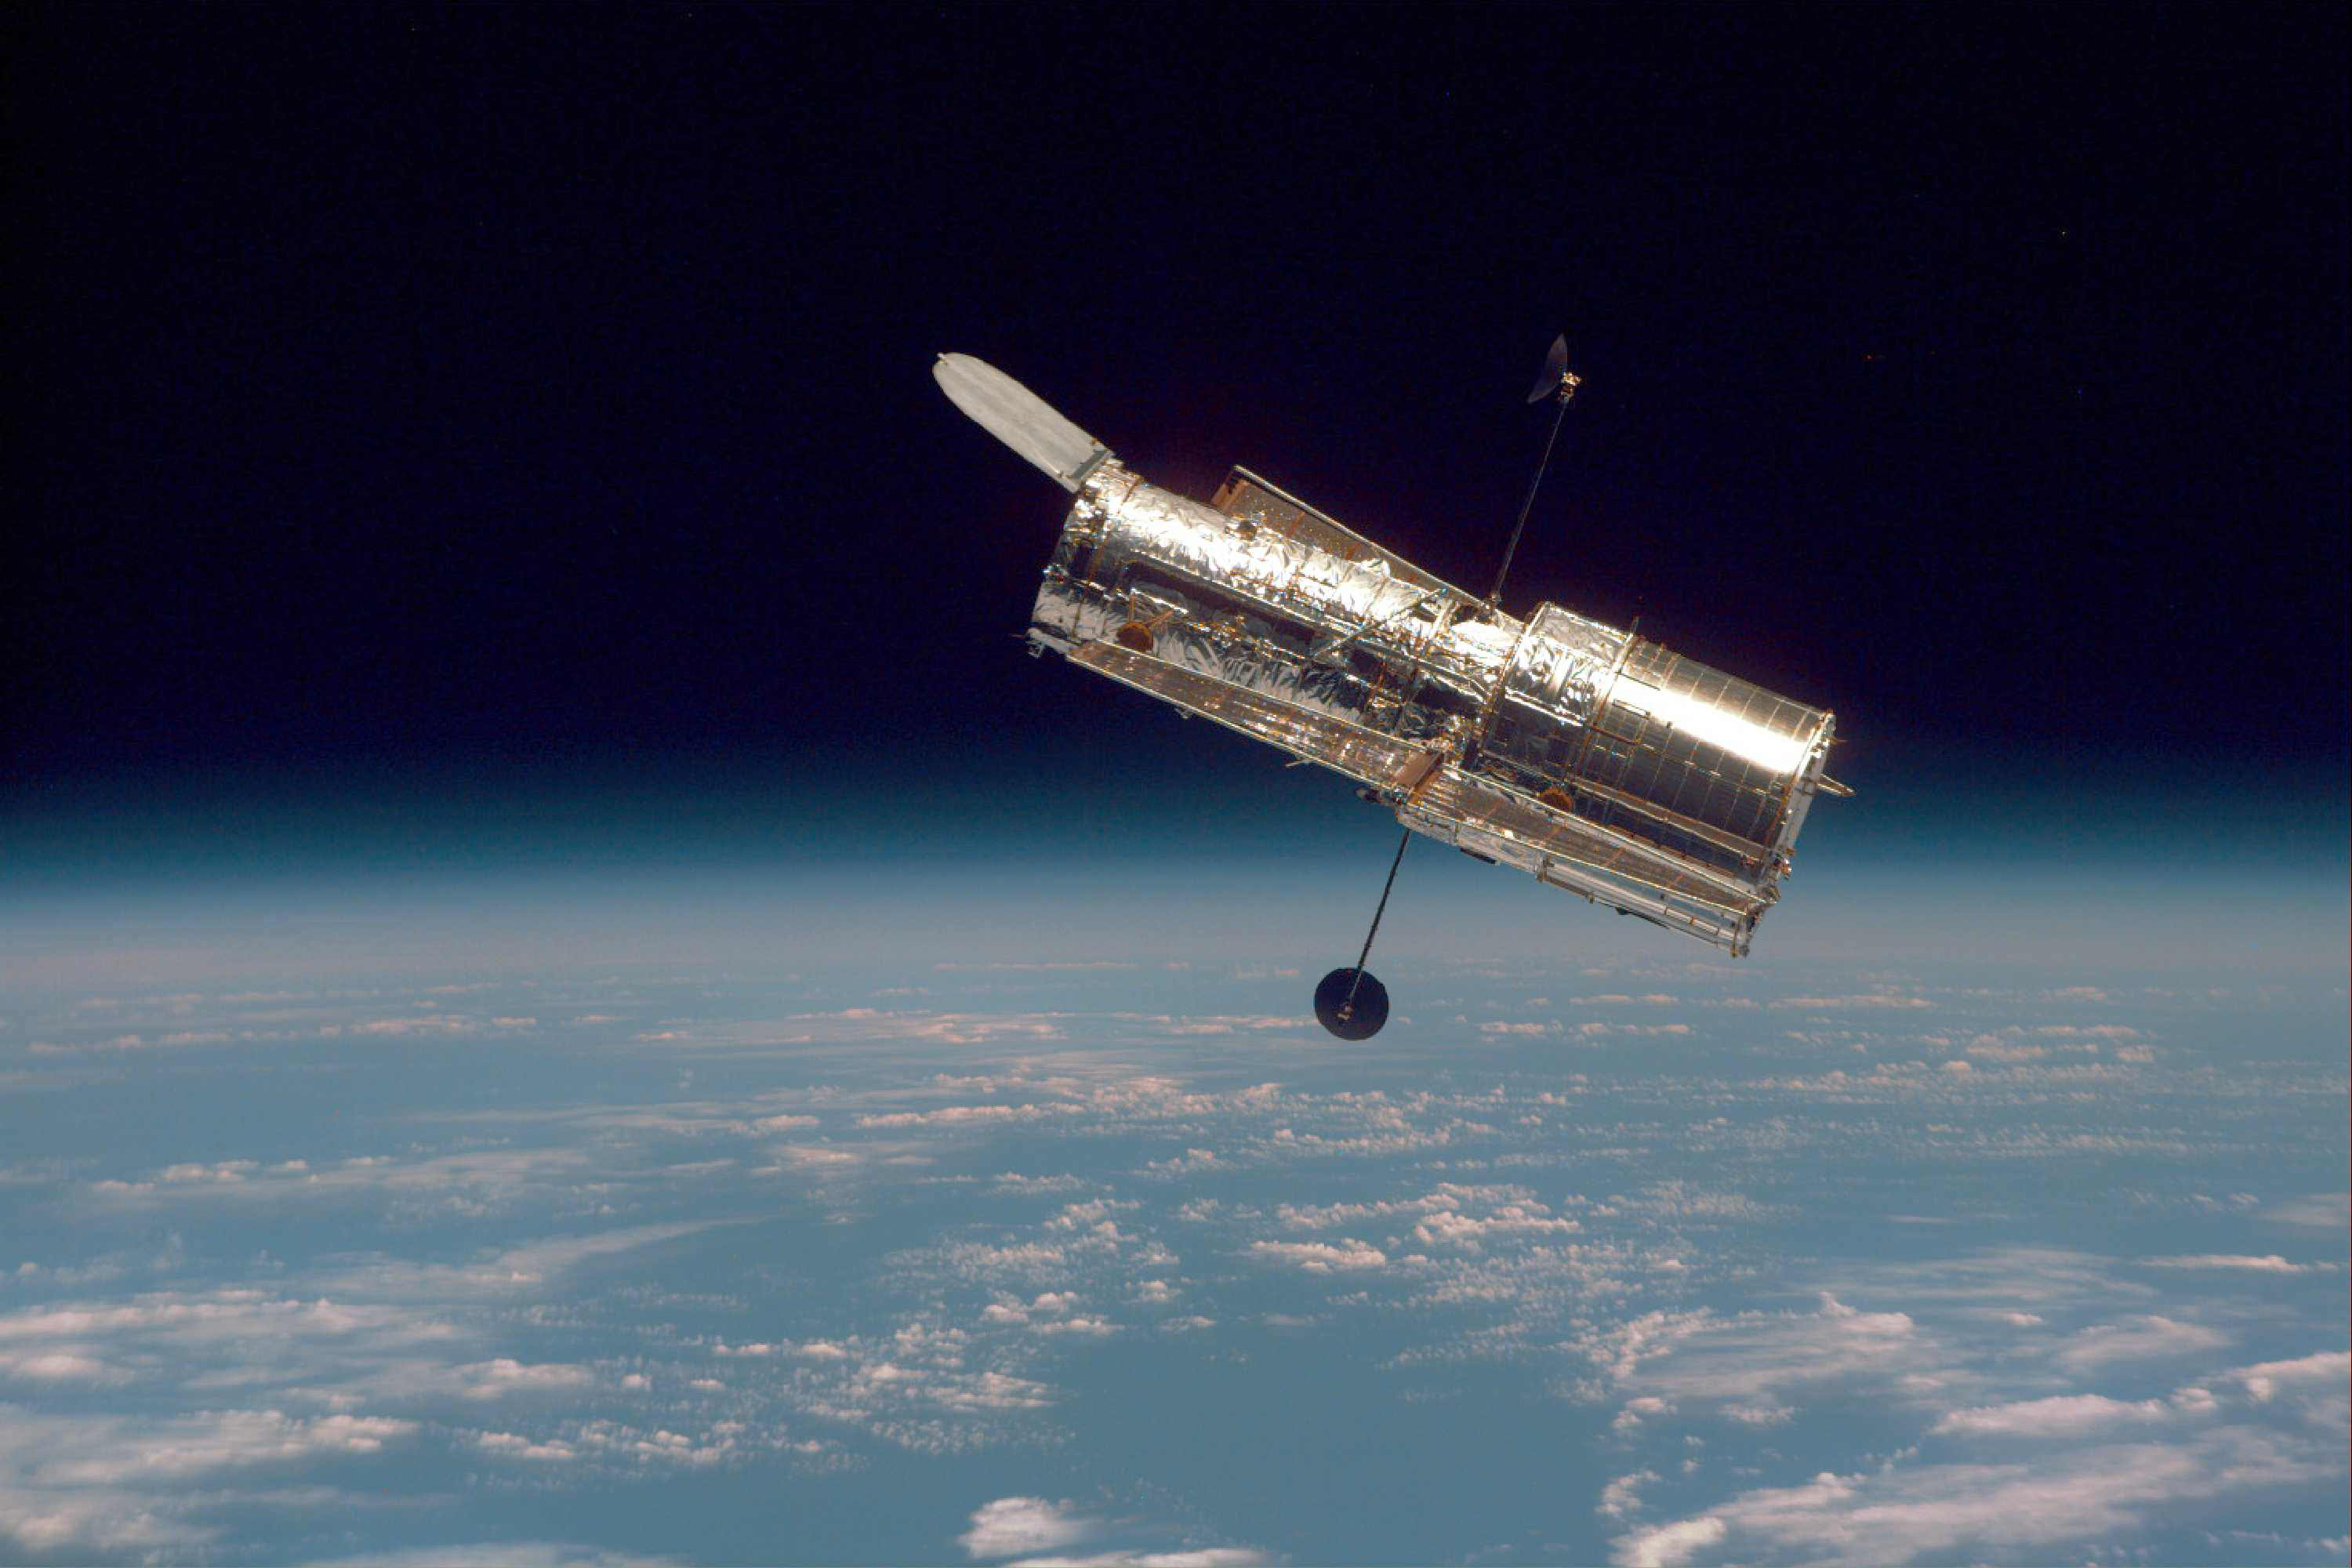 Will China's new space telescope out-perform the Hubble? Image: